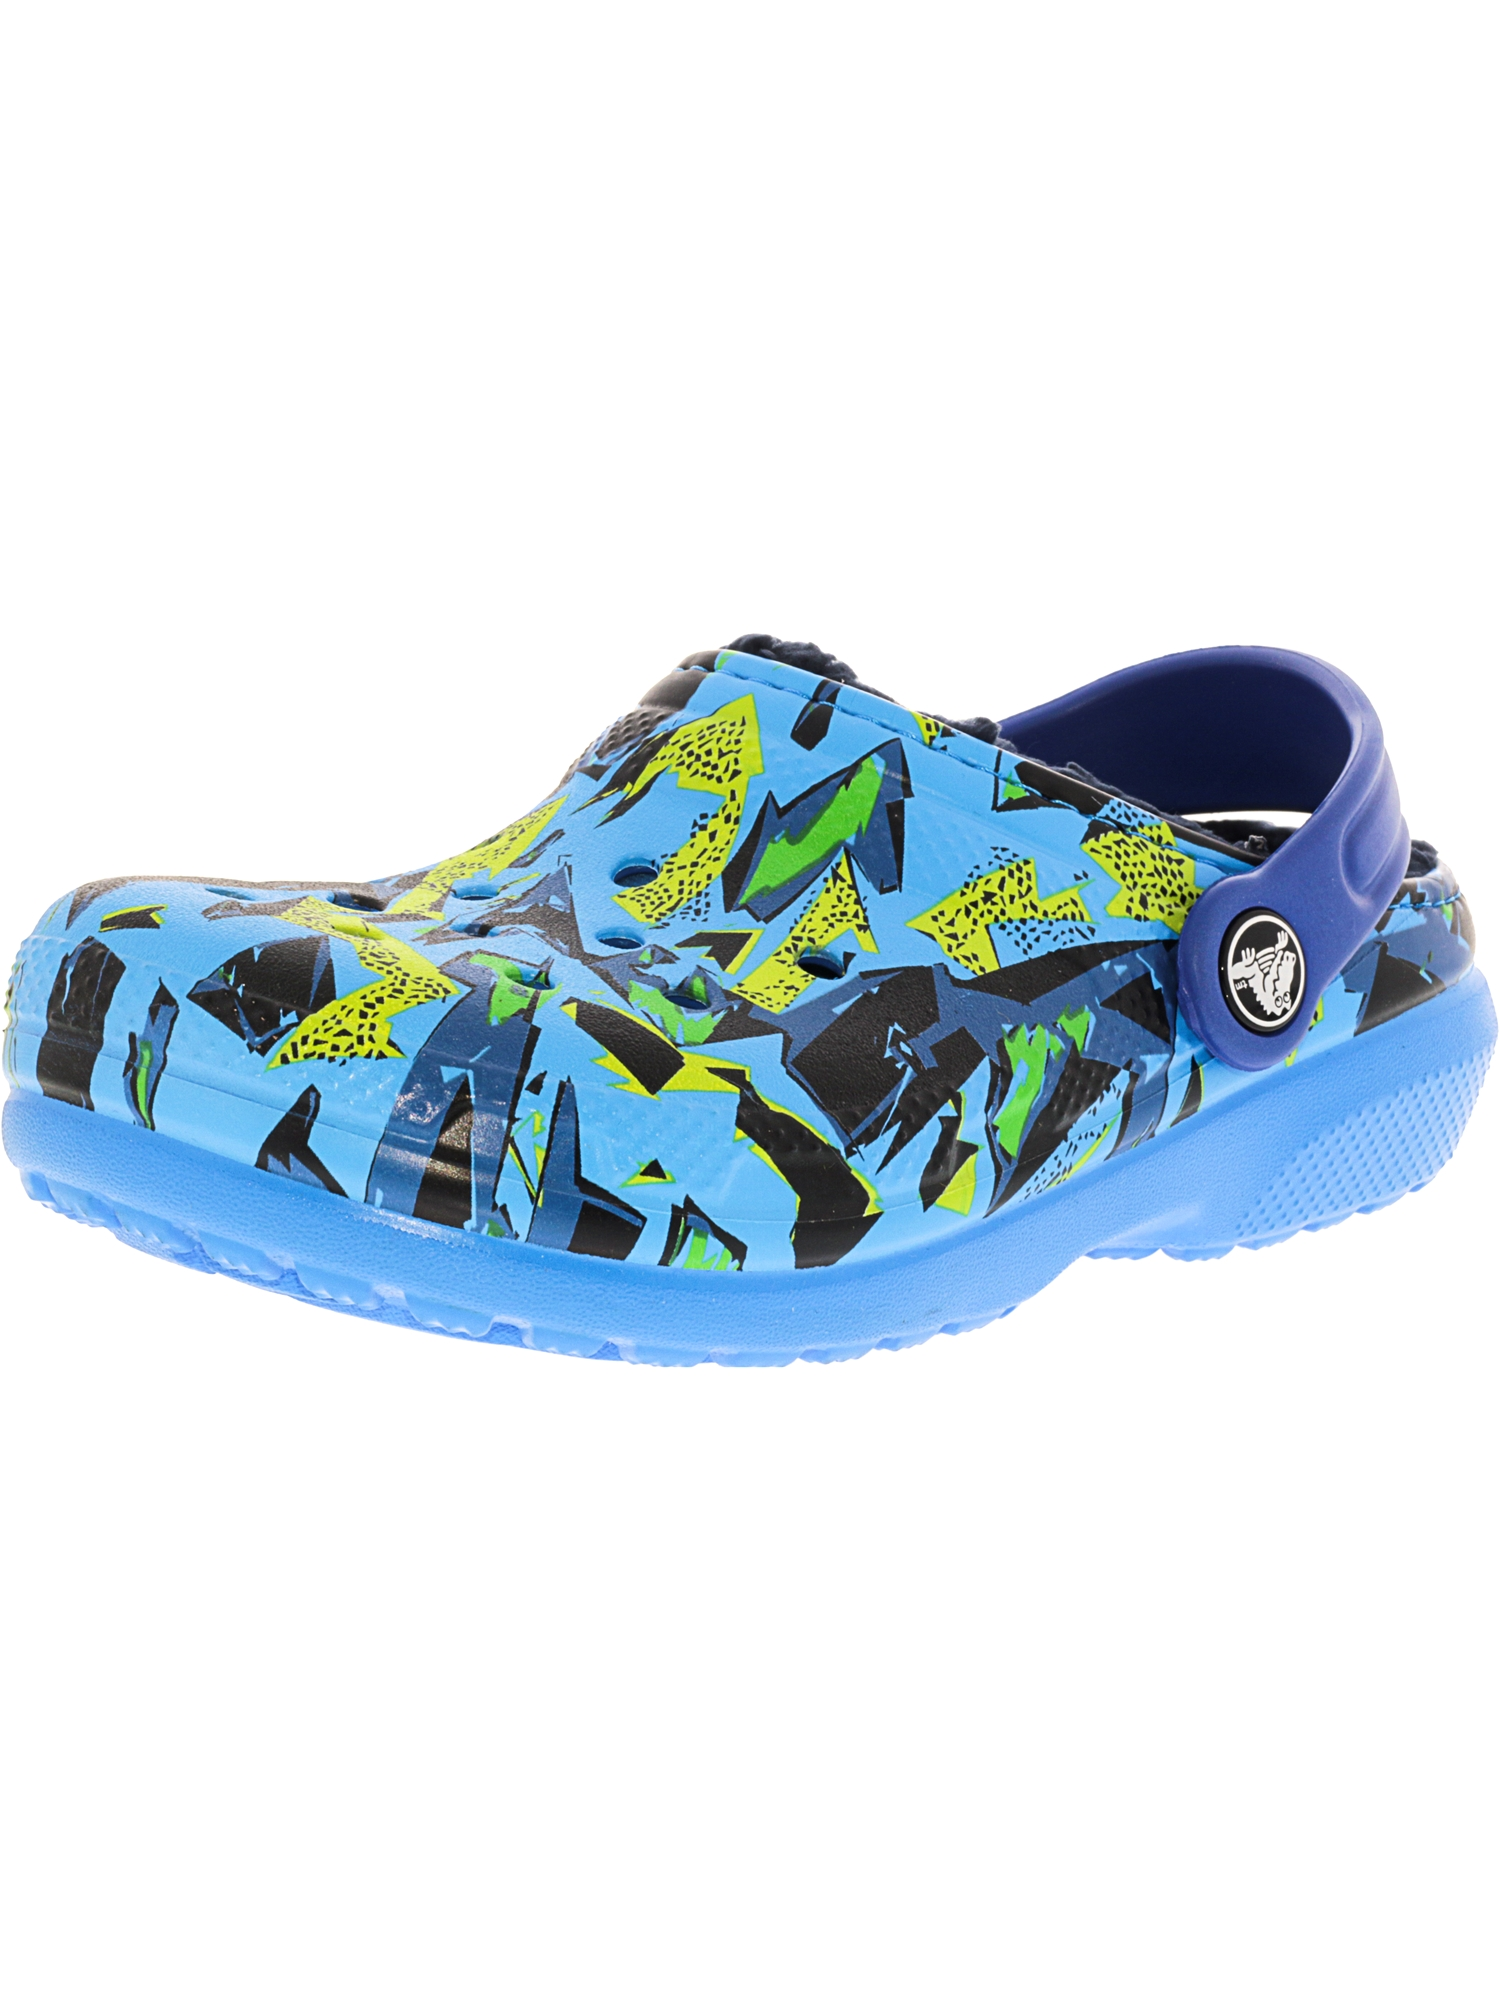 Crocs Classic Lined Graphic Clog Ocean   Navy Ankle-High Clogs 1M by Crocs